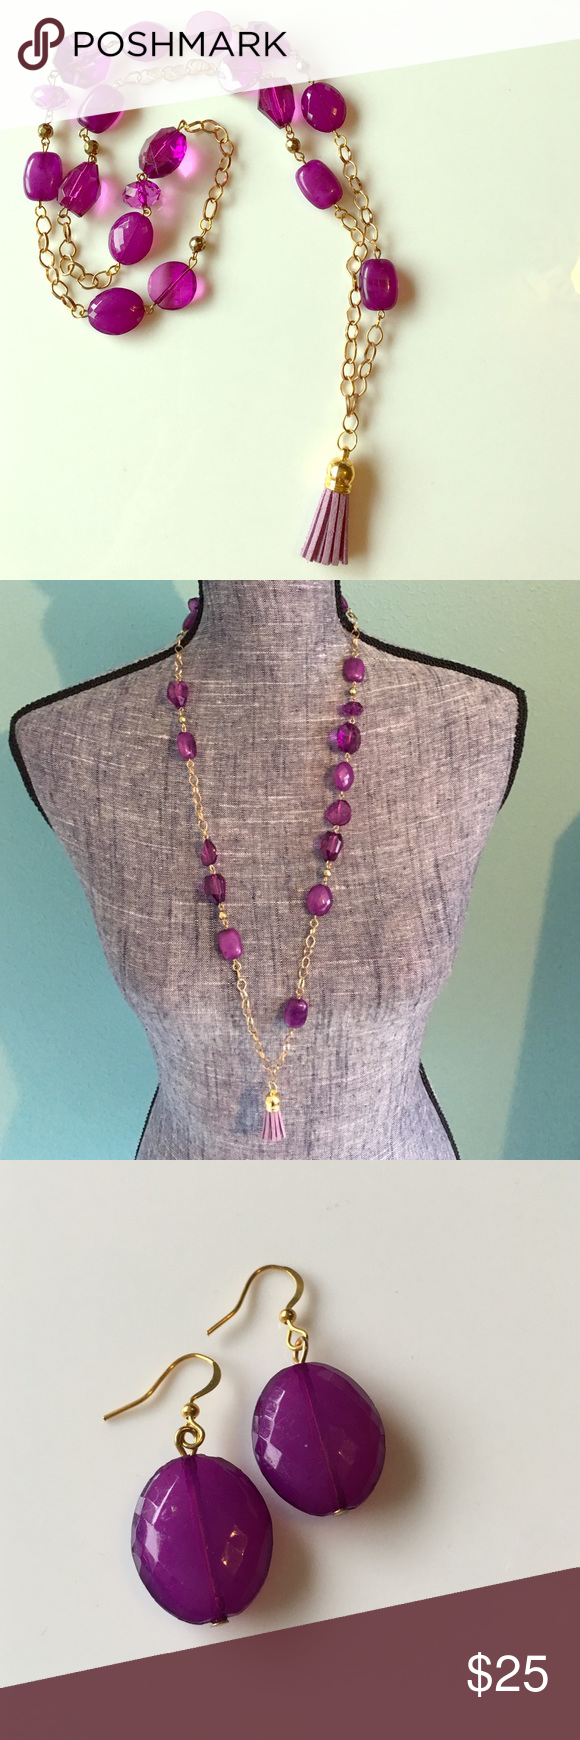 """Boho Gypsy Leather Tassel Necklace Earring Purple 2 piece set: Hand crafted & 1 of a kind! Purple acrylic beaded gold tone necklace with purple leather tassel pendant & matching earrings. Necklace is 33"""" long & pendant is 1.5"""" long. Earrings on gold tone hooks are 1.25"""" long NatureAngels Jewelry Necklaces"""